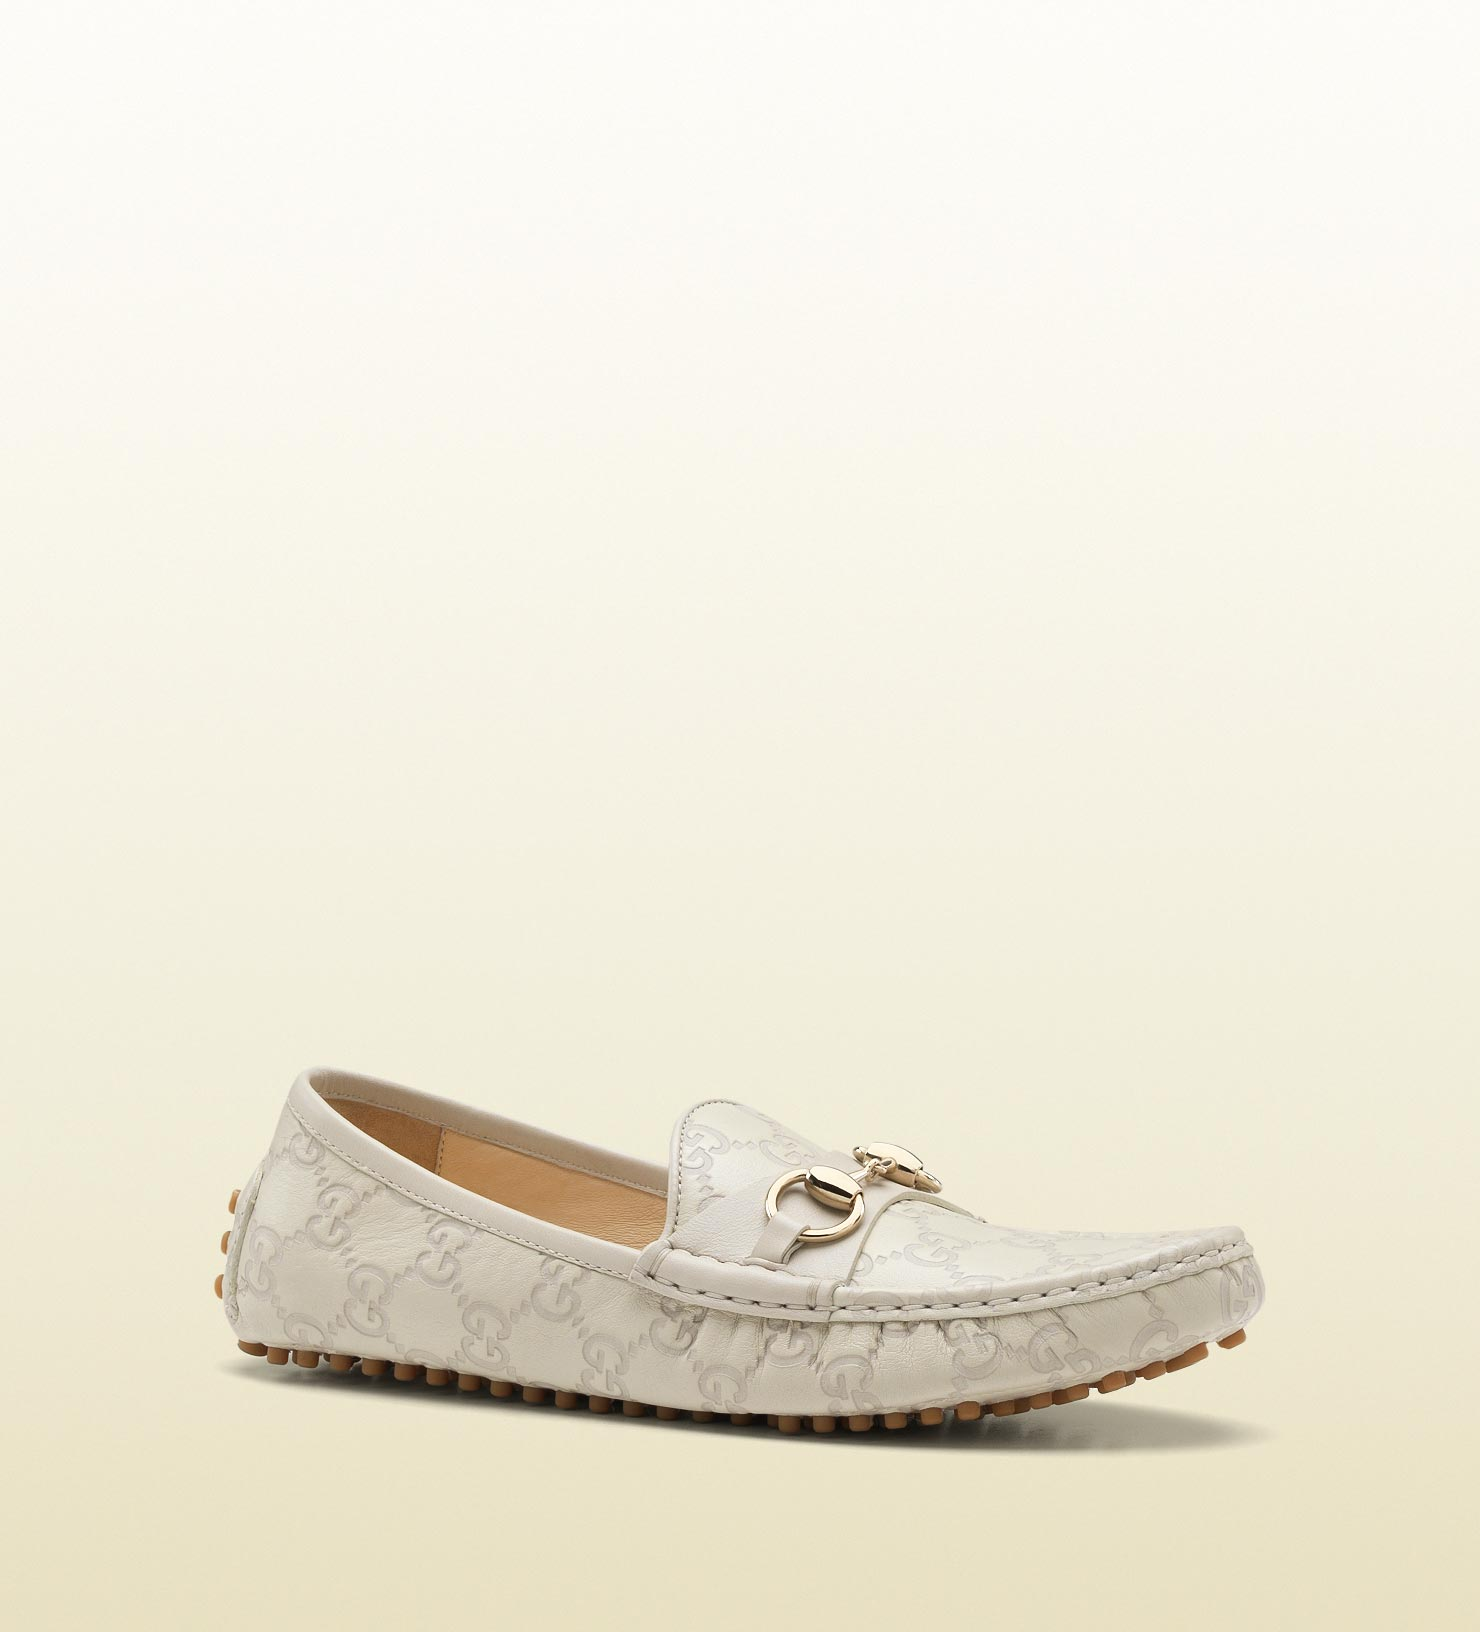 1dcc6b2b432 Gucci Driver With Horsebit Detail in White